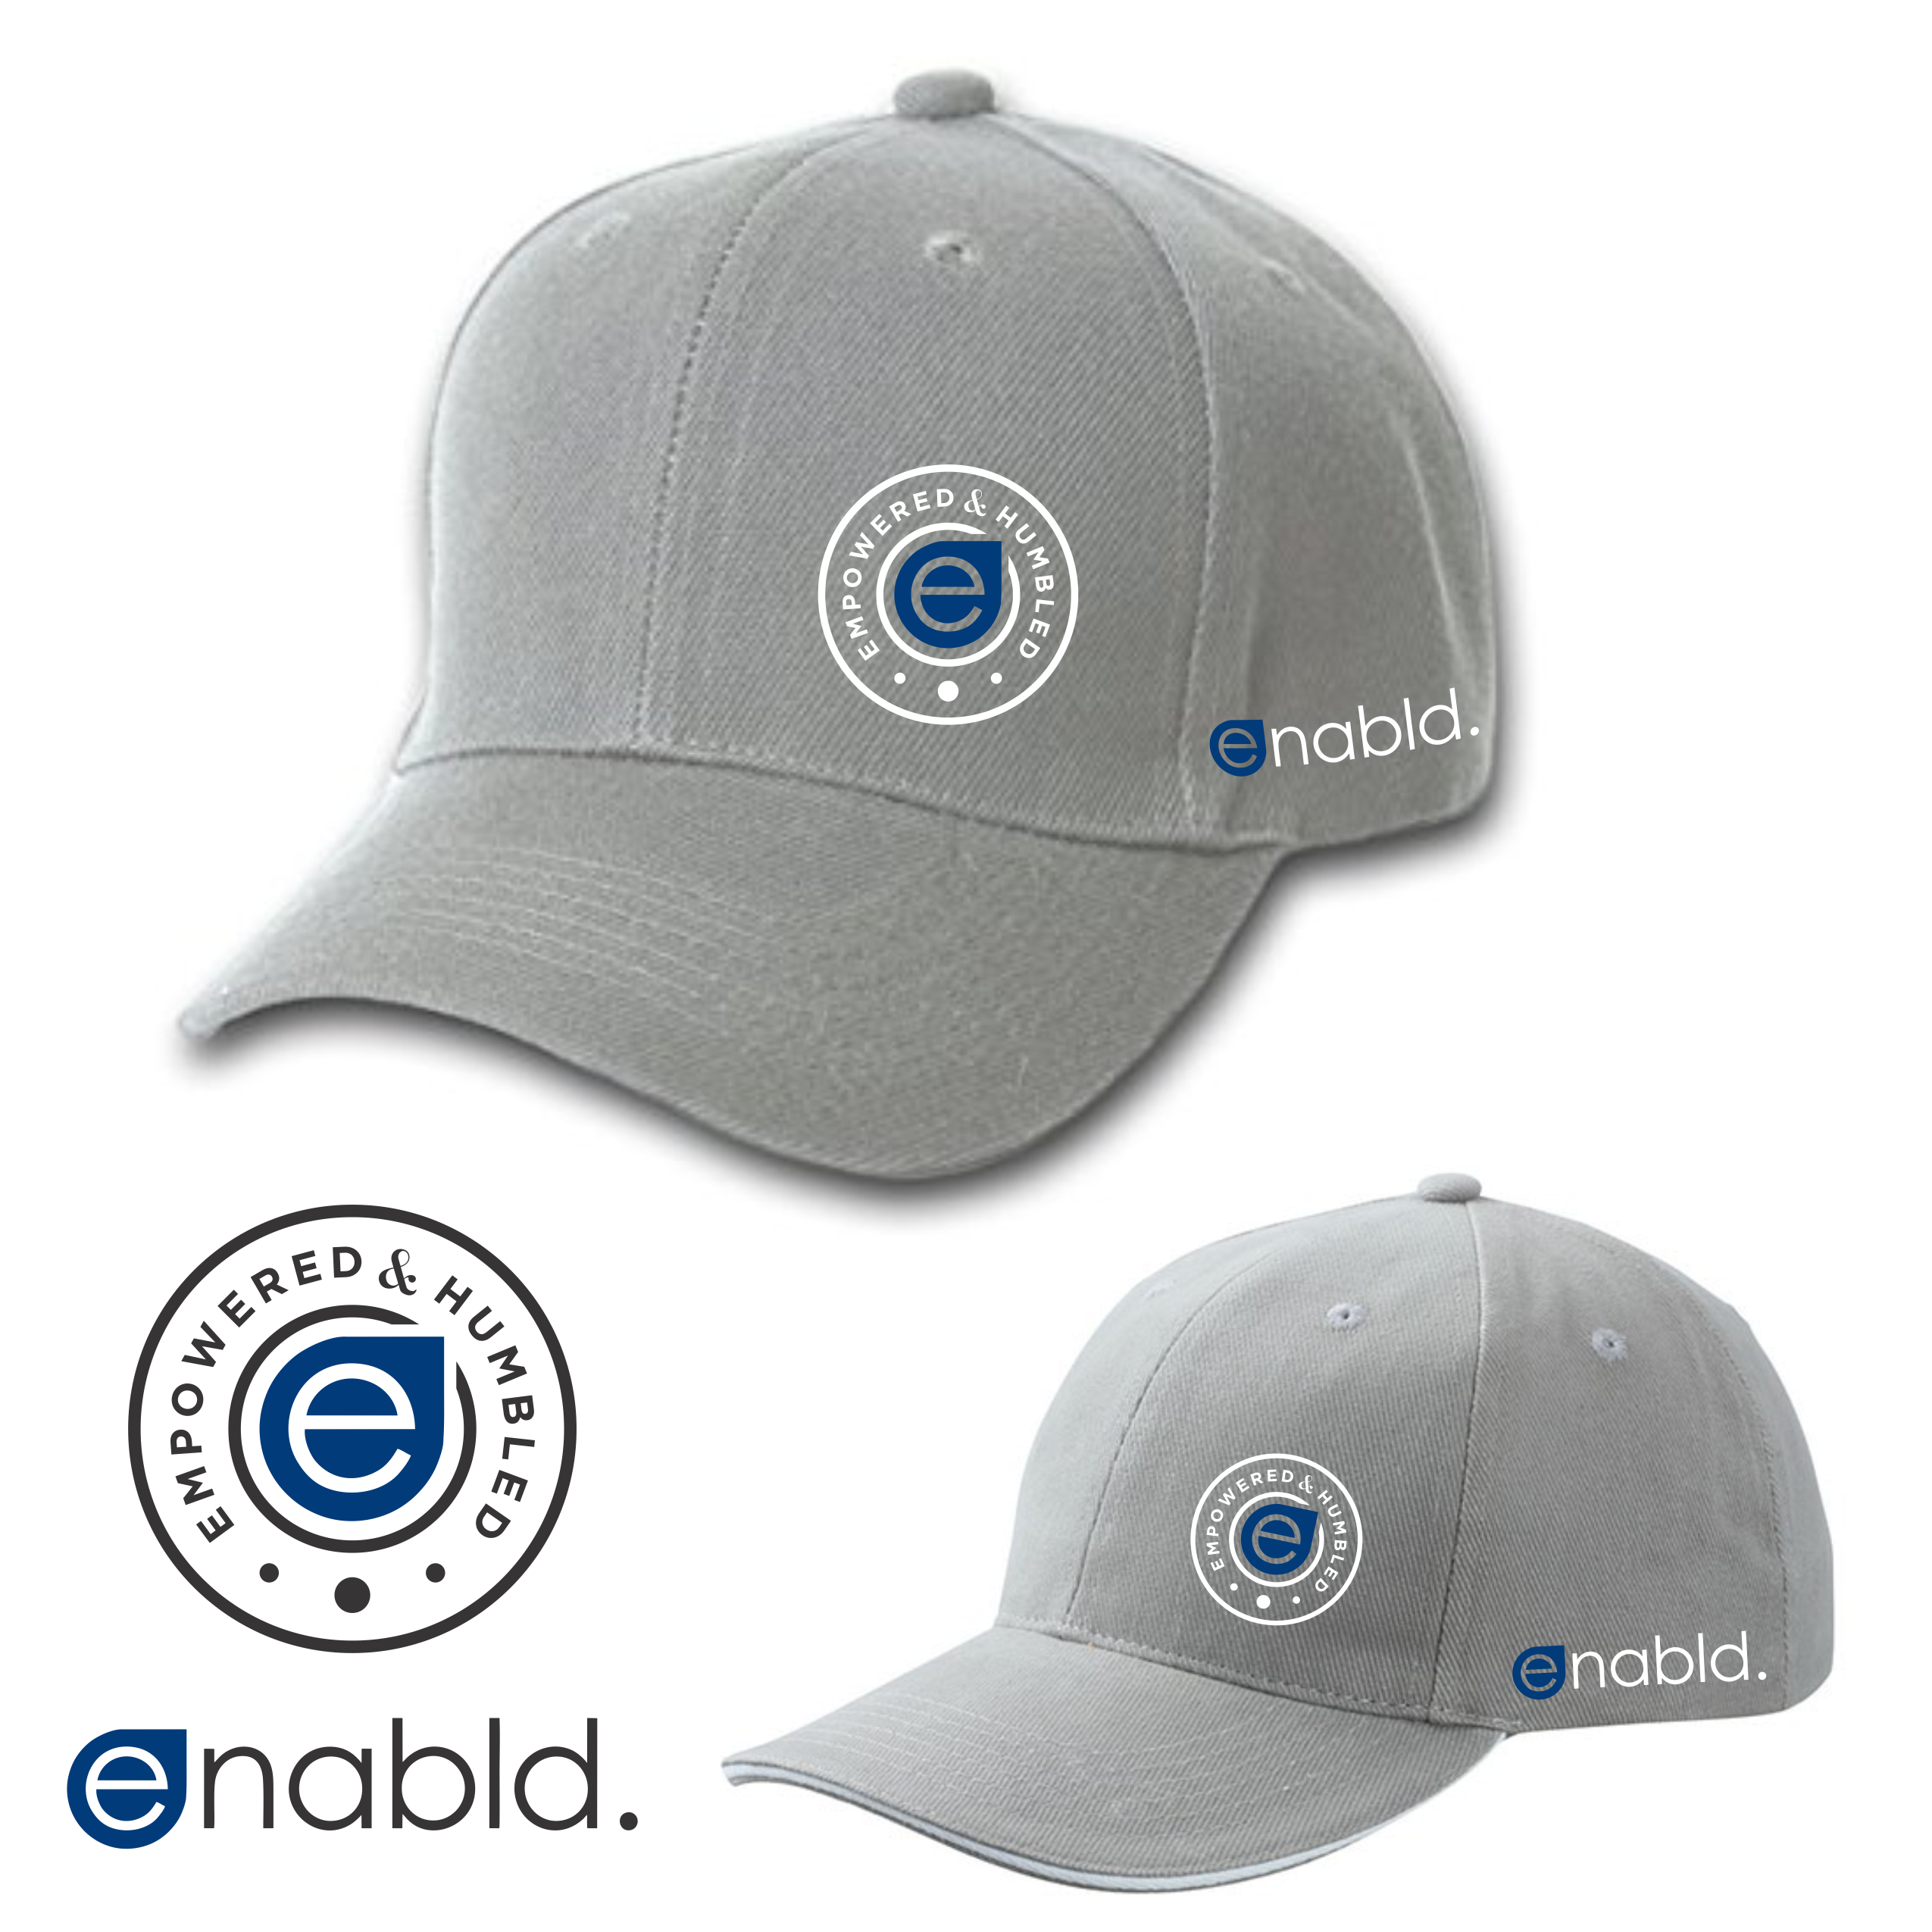 Enabld cap